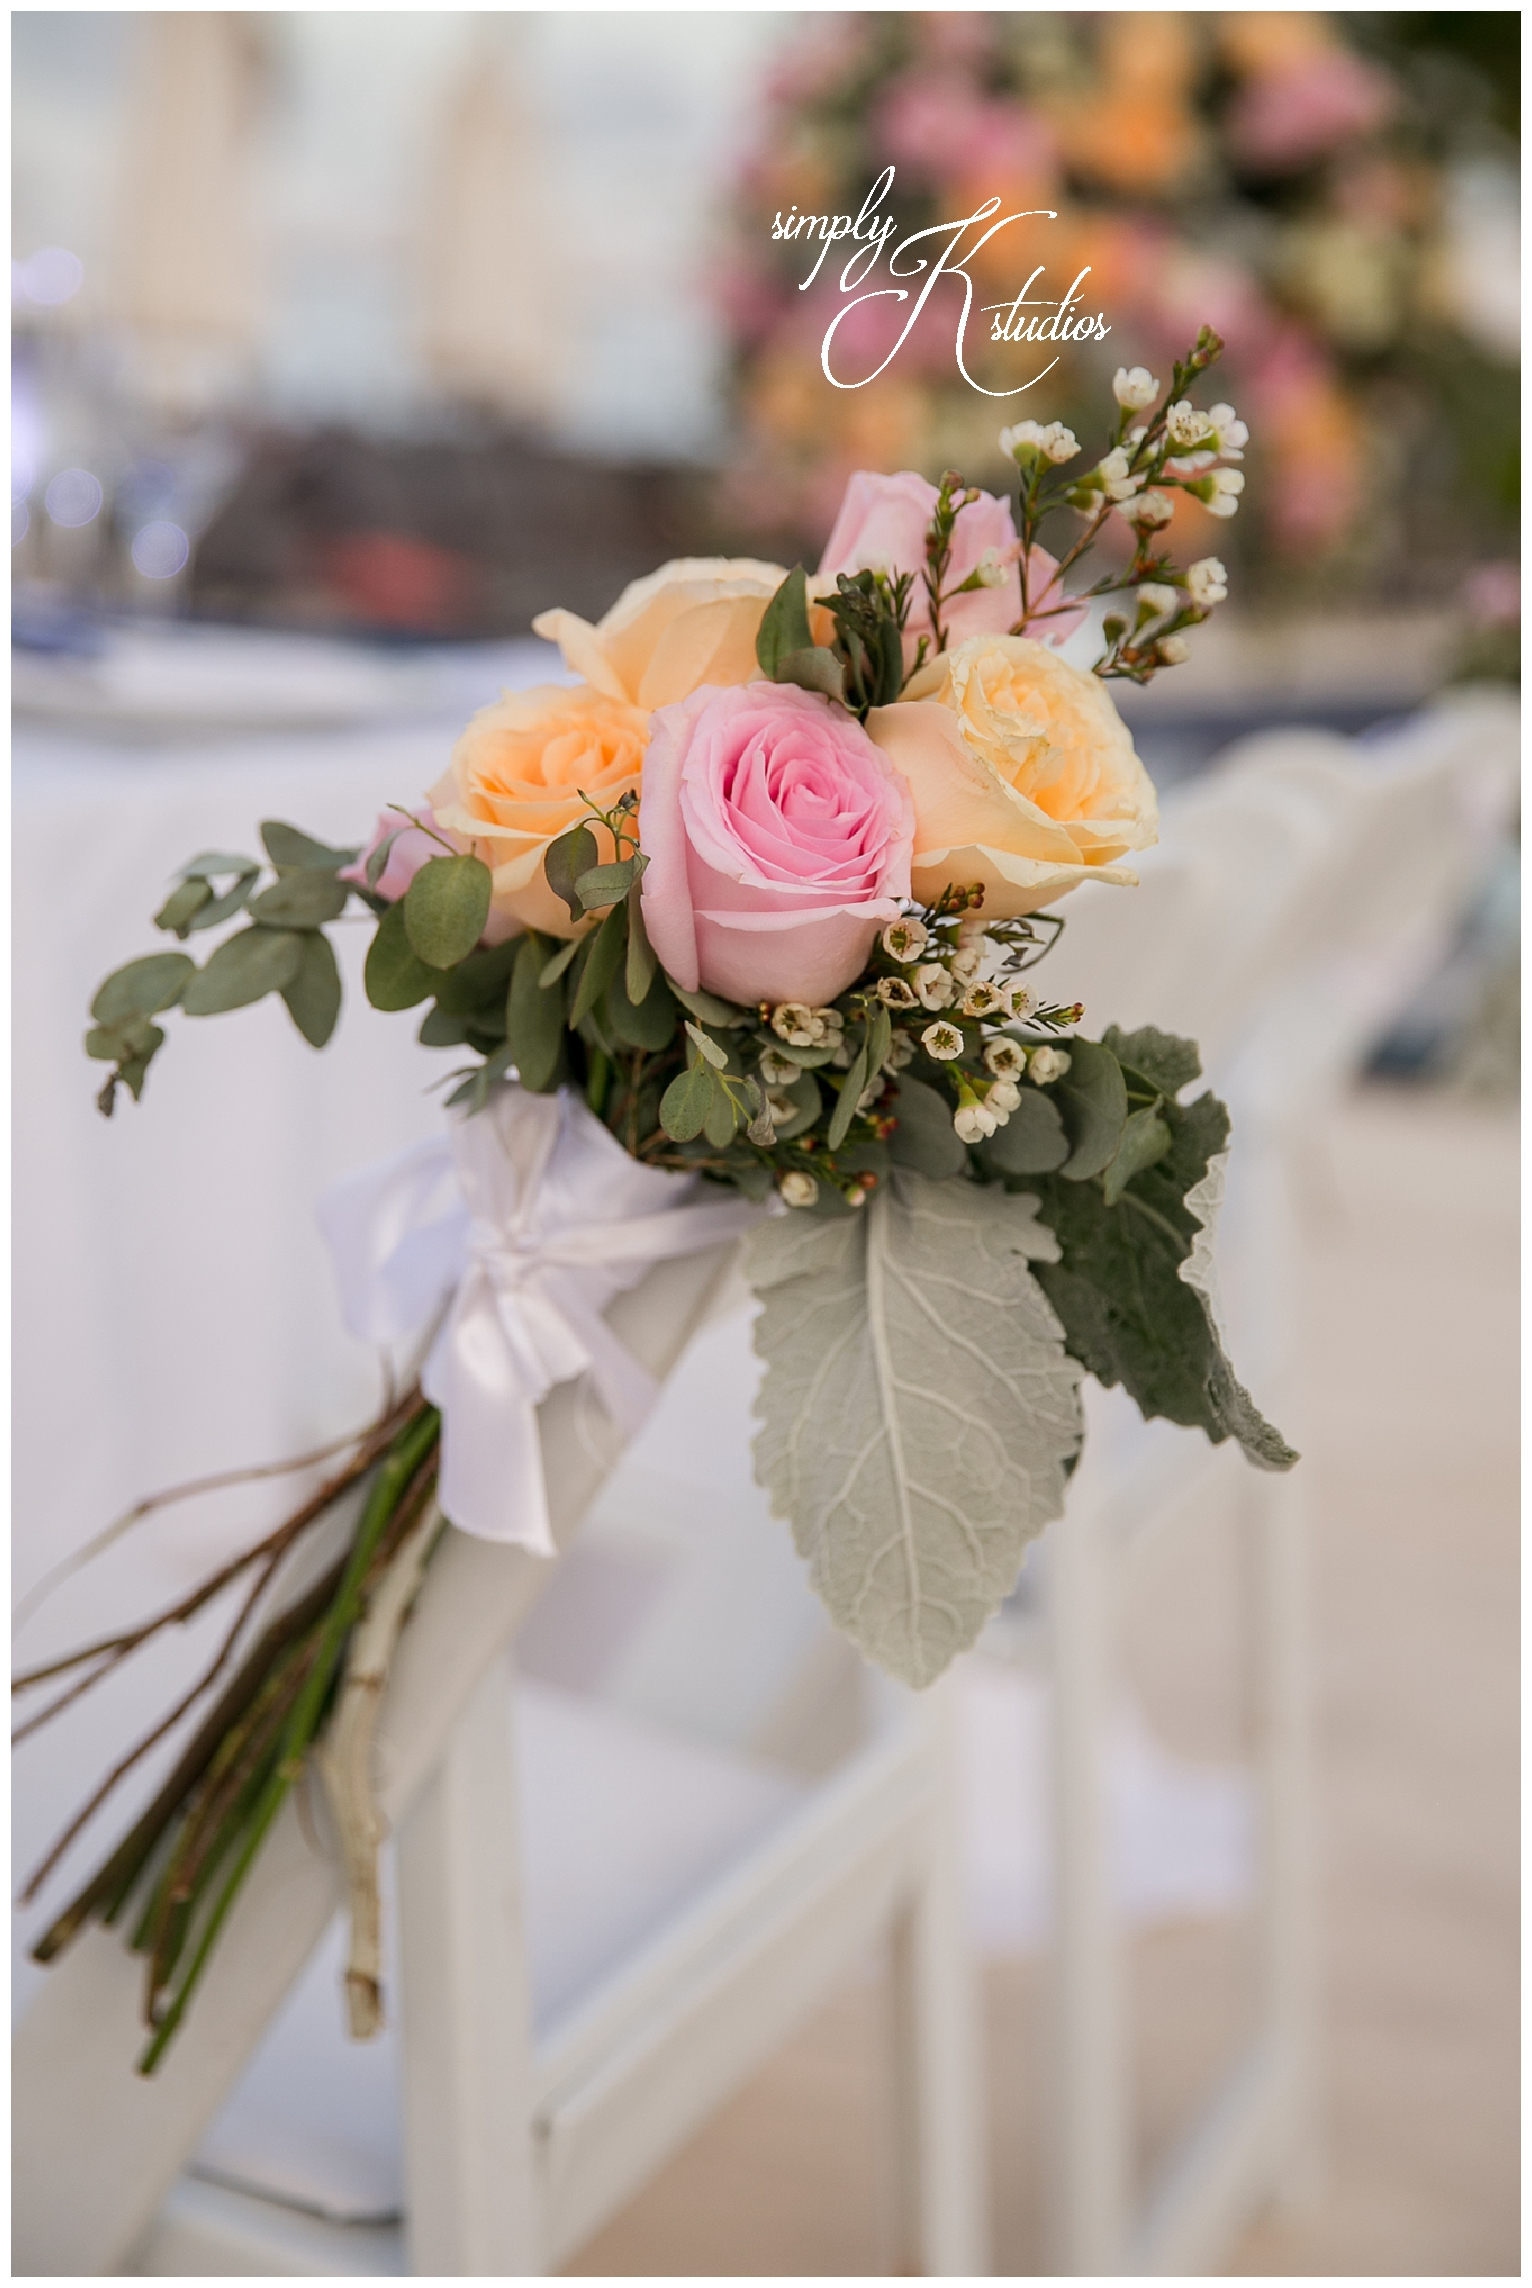 Wedding Flowers at Dreams Riviera Cancun.jpg